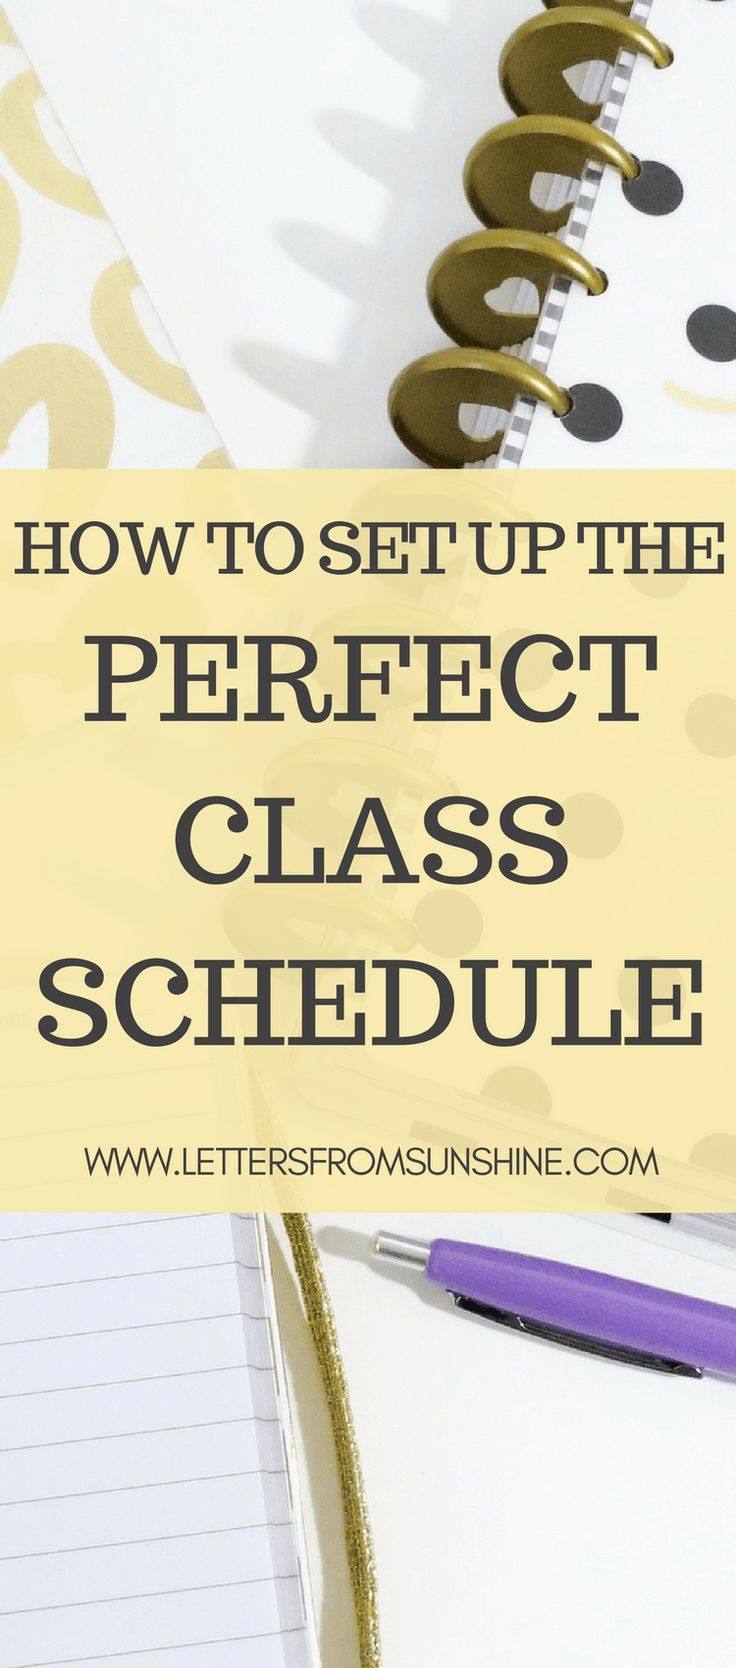 how to set up the perfect class schedule college life pinterest